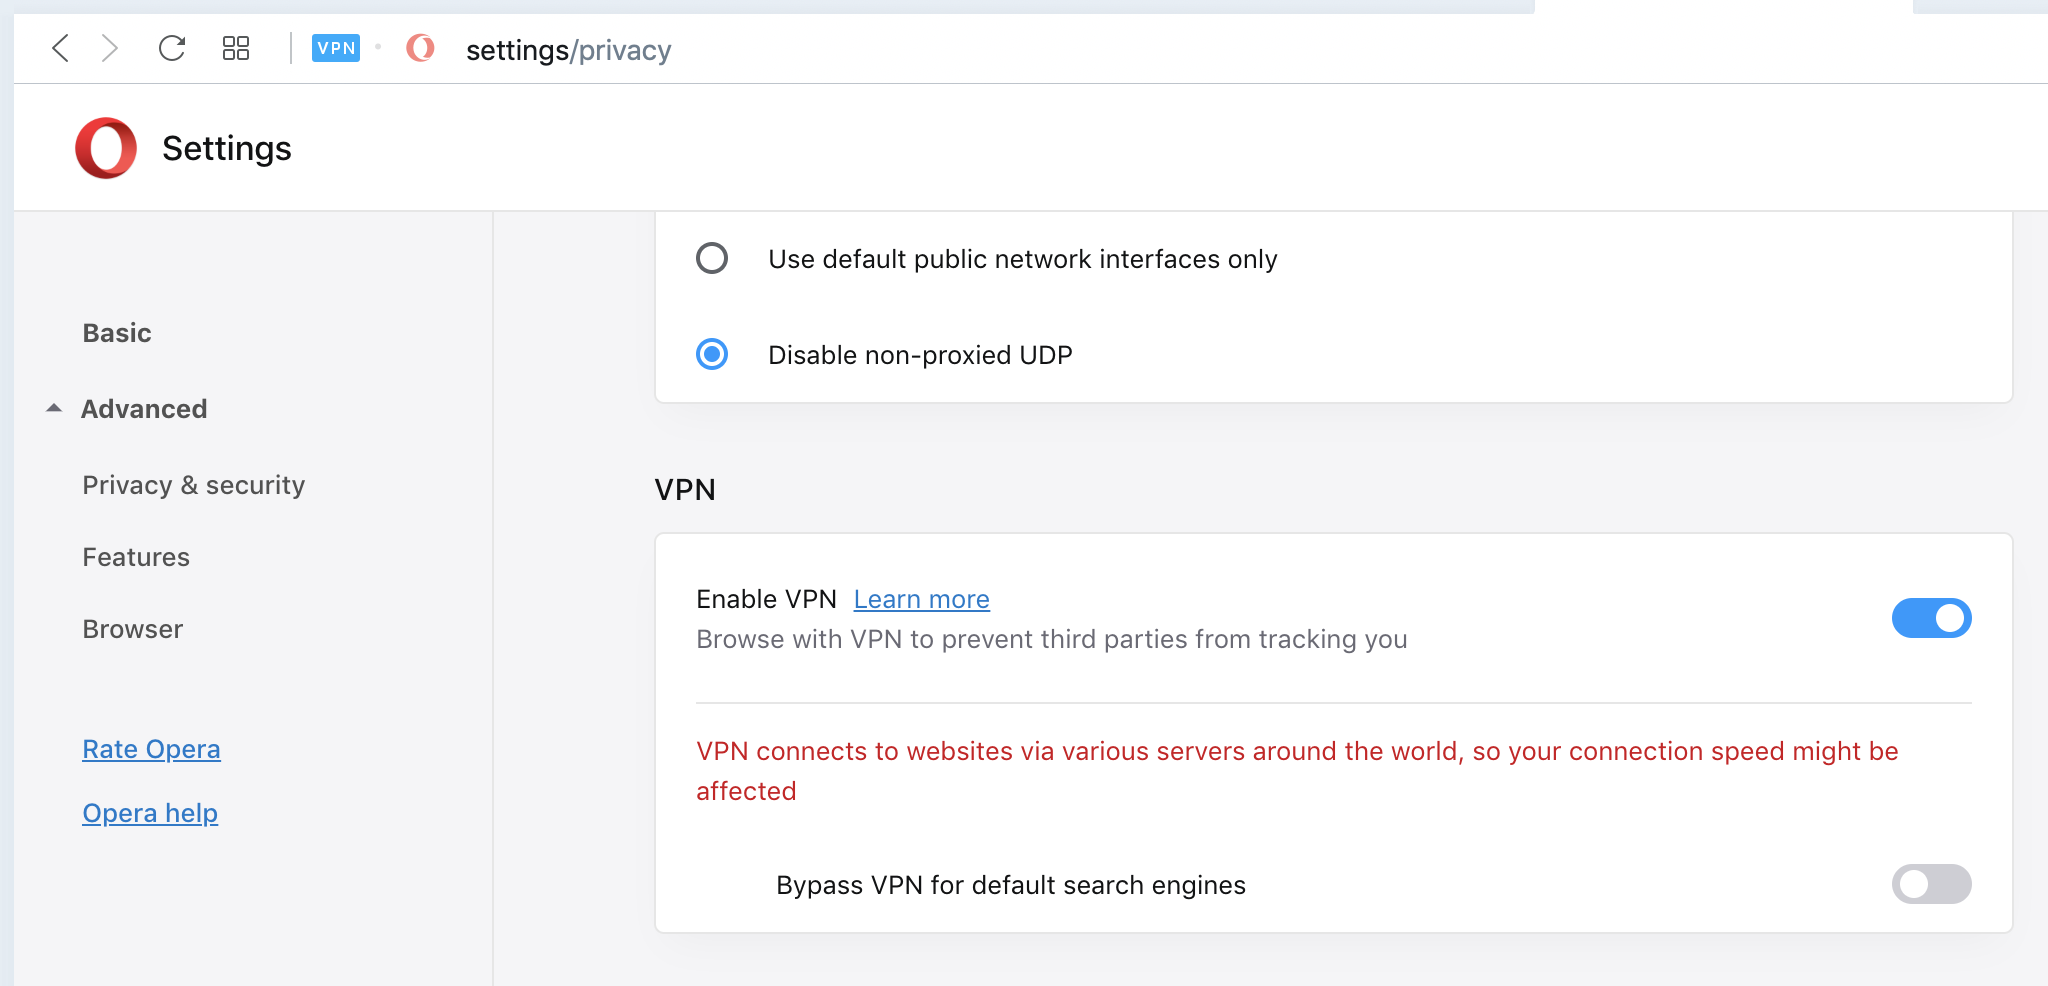 Opera VPN settings in privacy security area